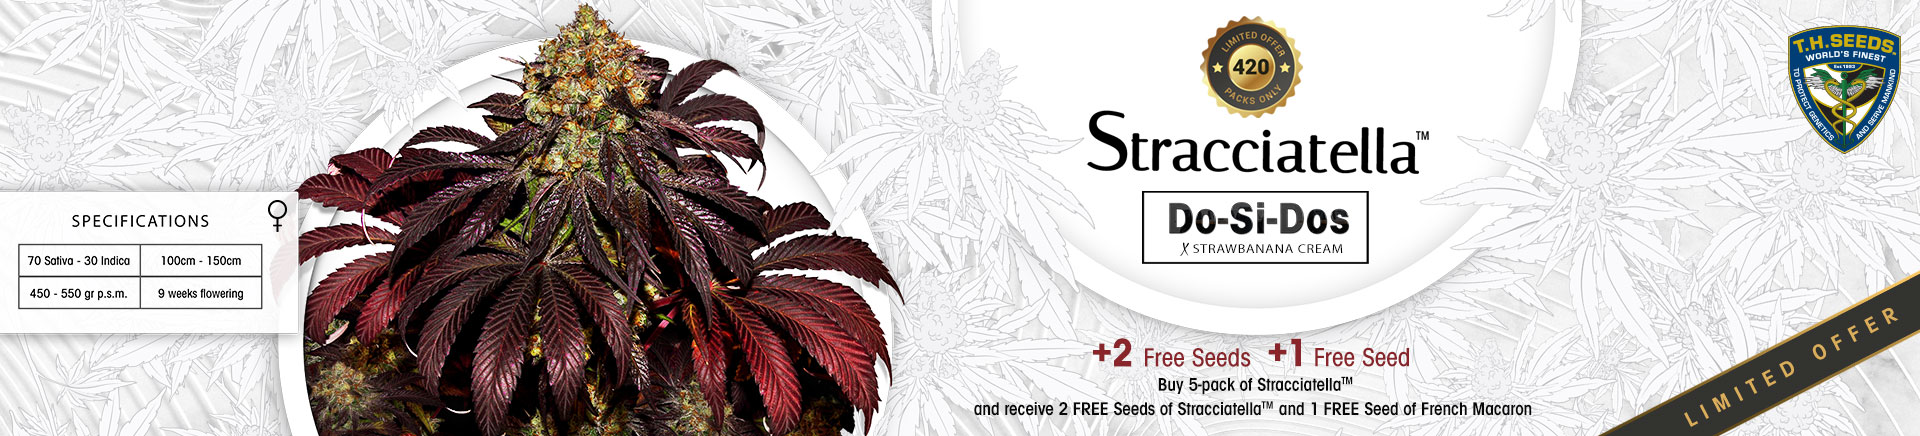 Th Seeds Promo Straciatella